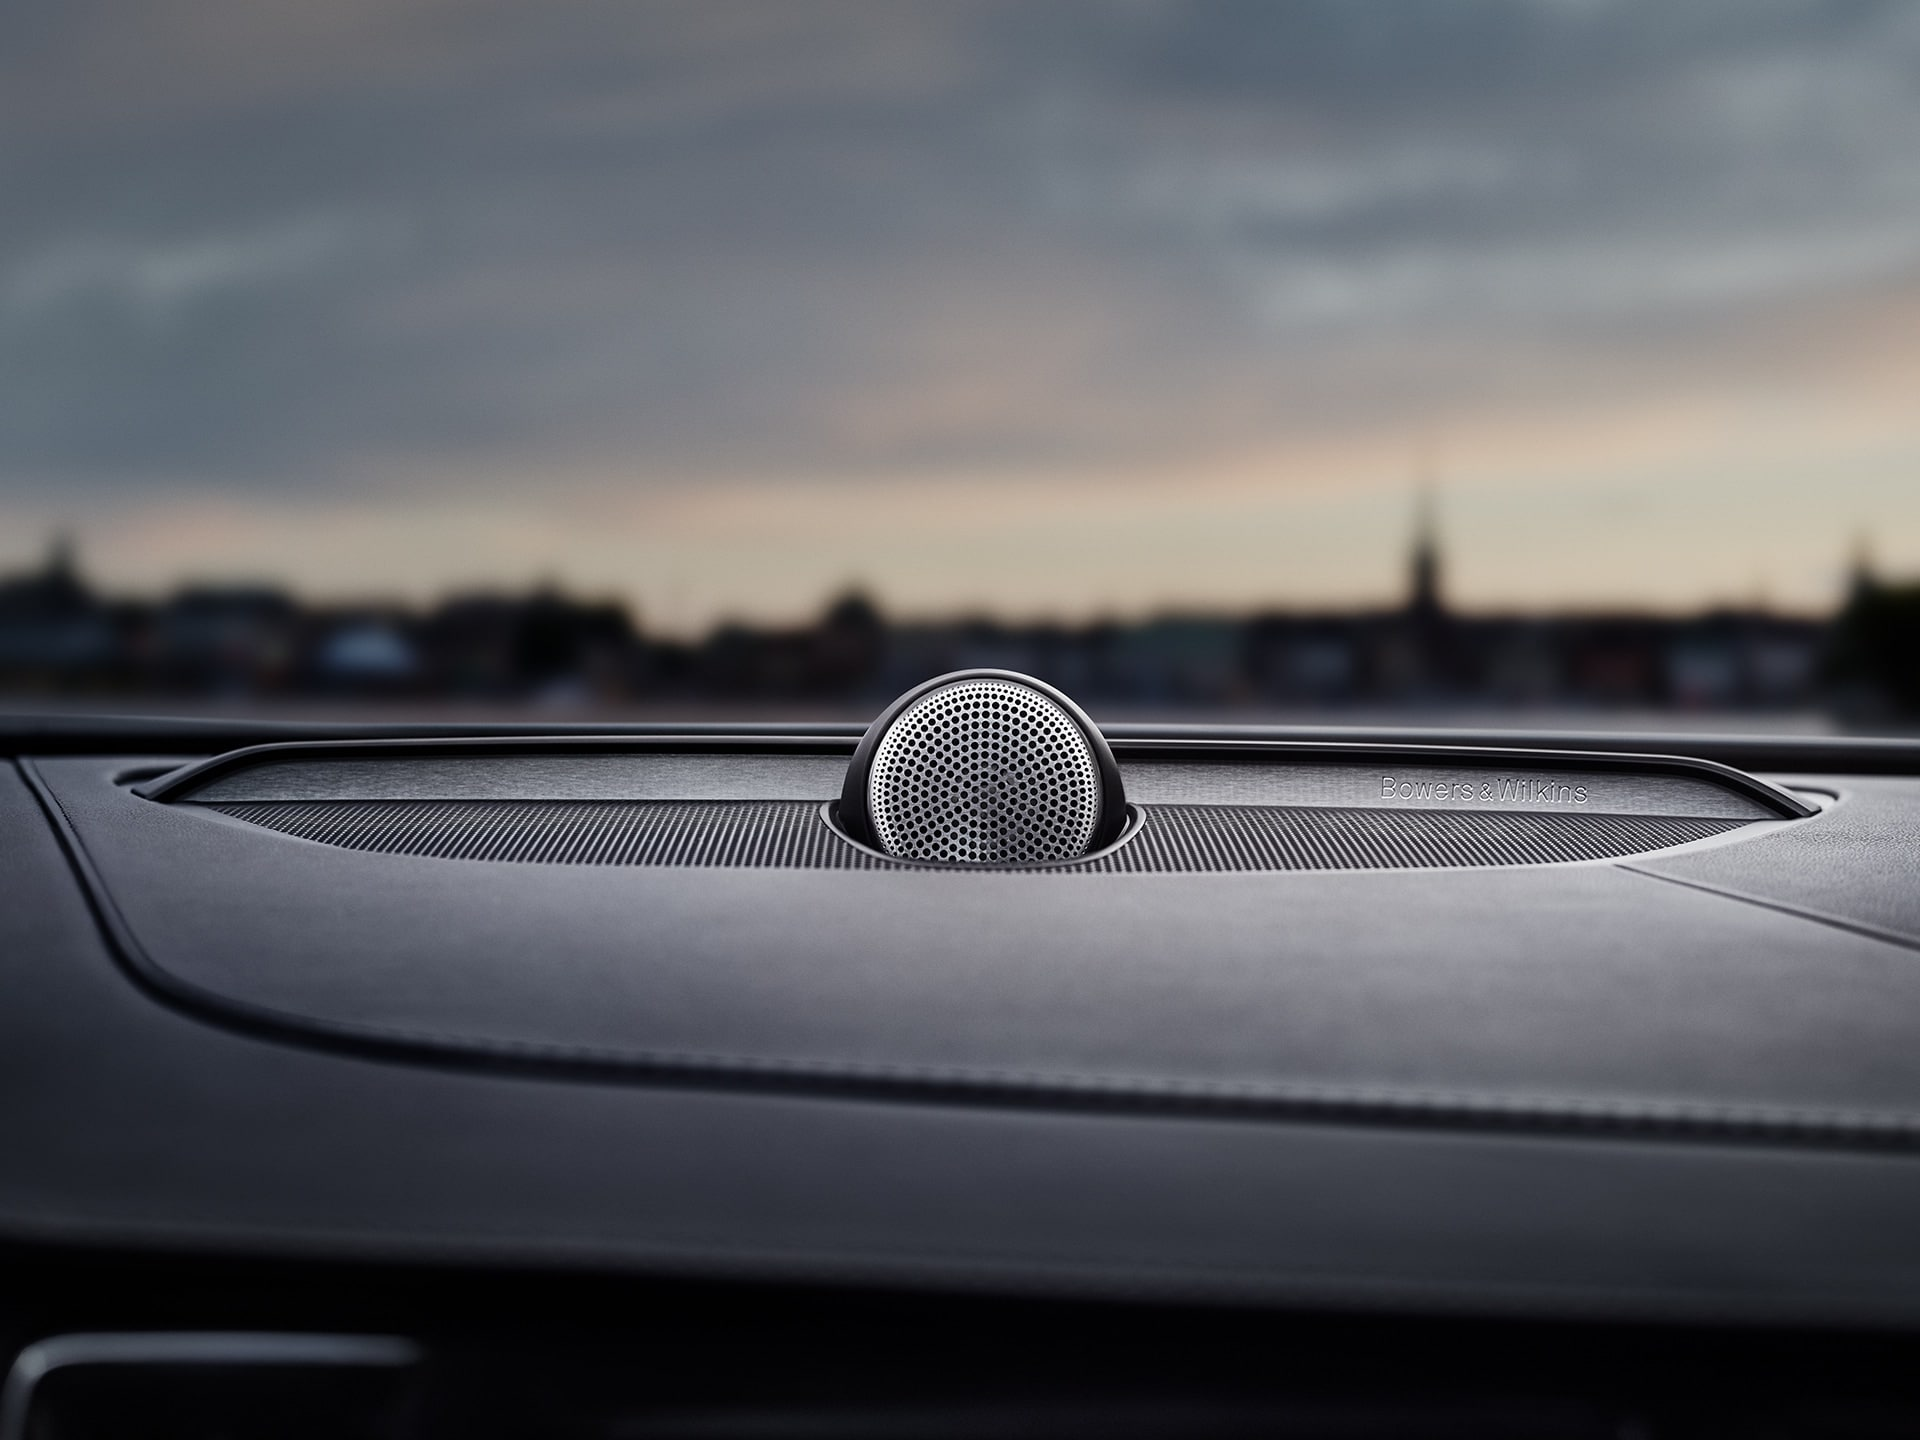 Bowers & Wilkins audio system inside a Volvo V90